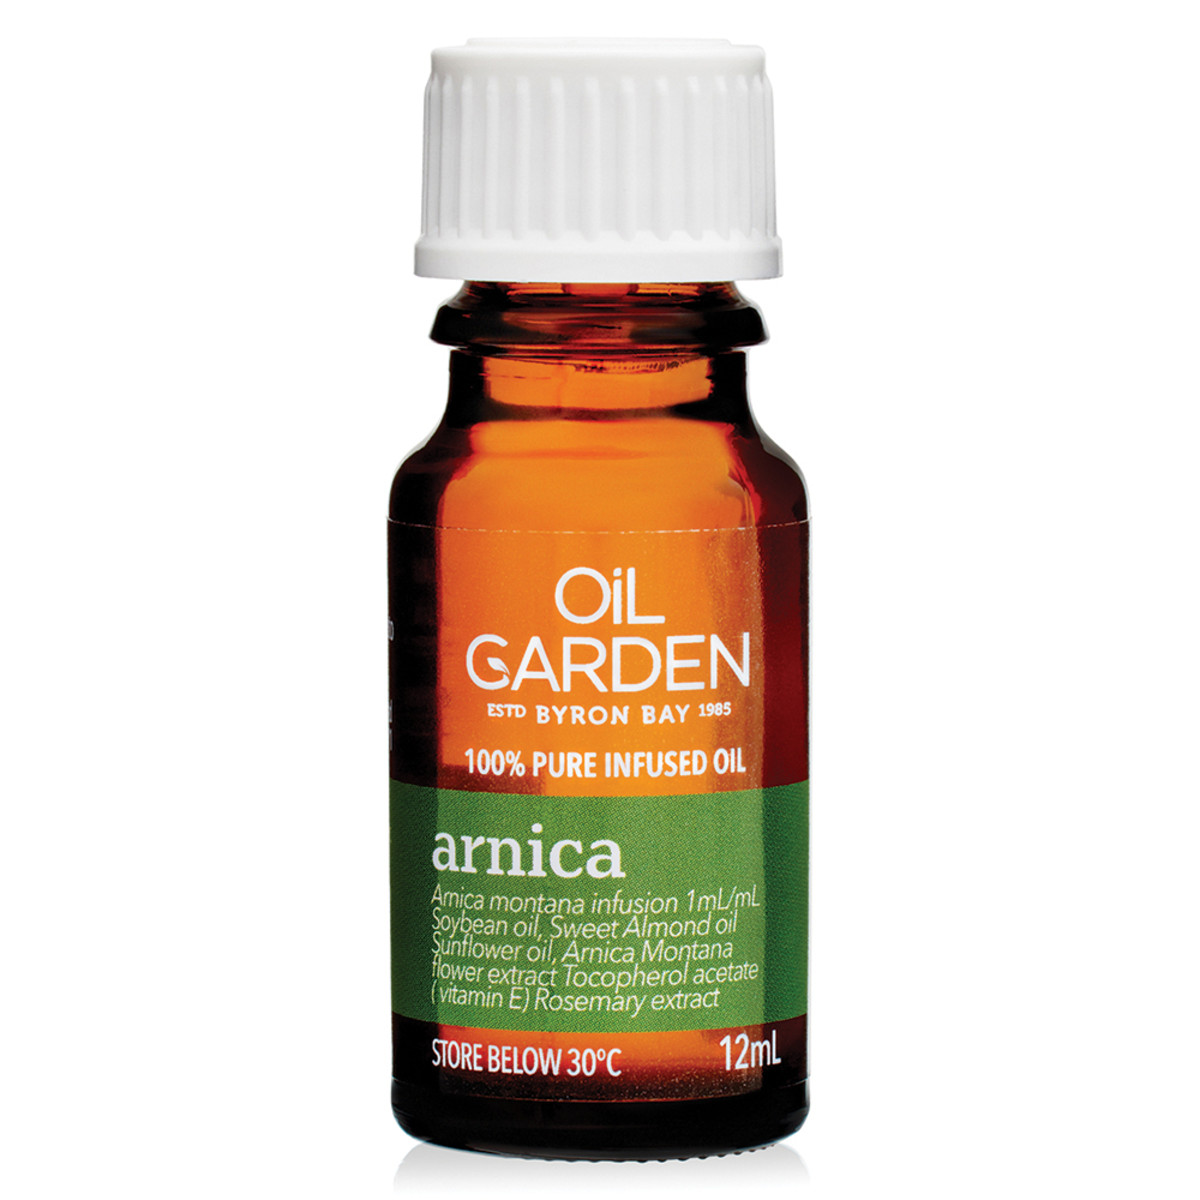 Image of The Oil Garden Arnica Infused Oil 12ml